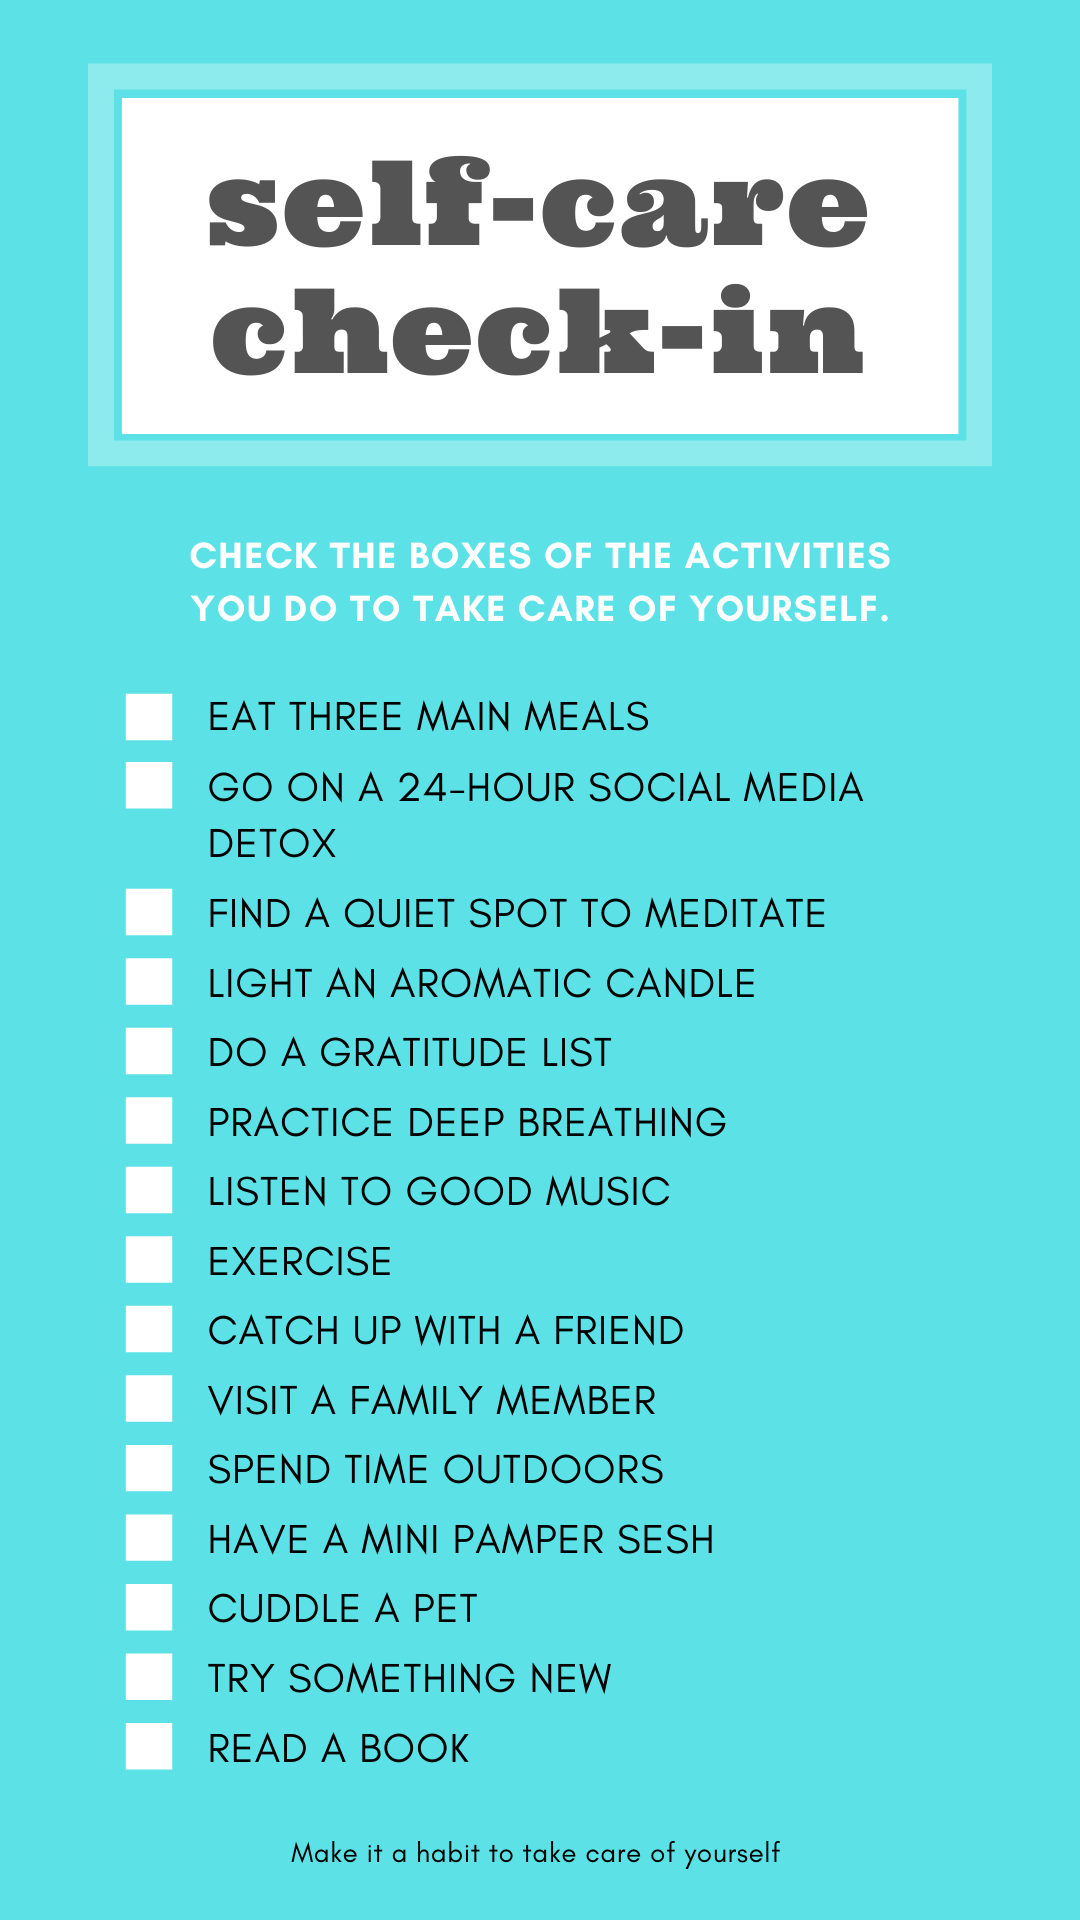 Photo of a blue box that contains a checklist of things to do to practice self-care.